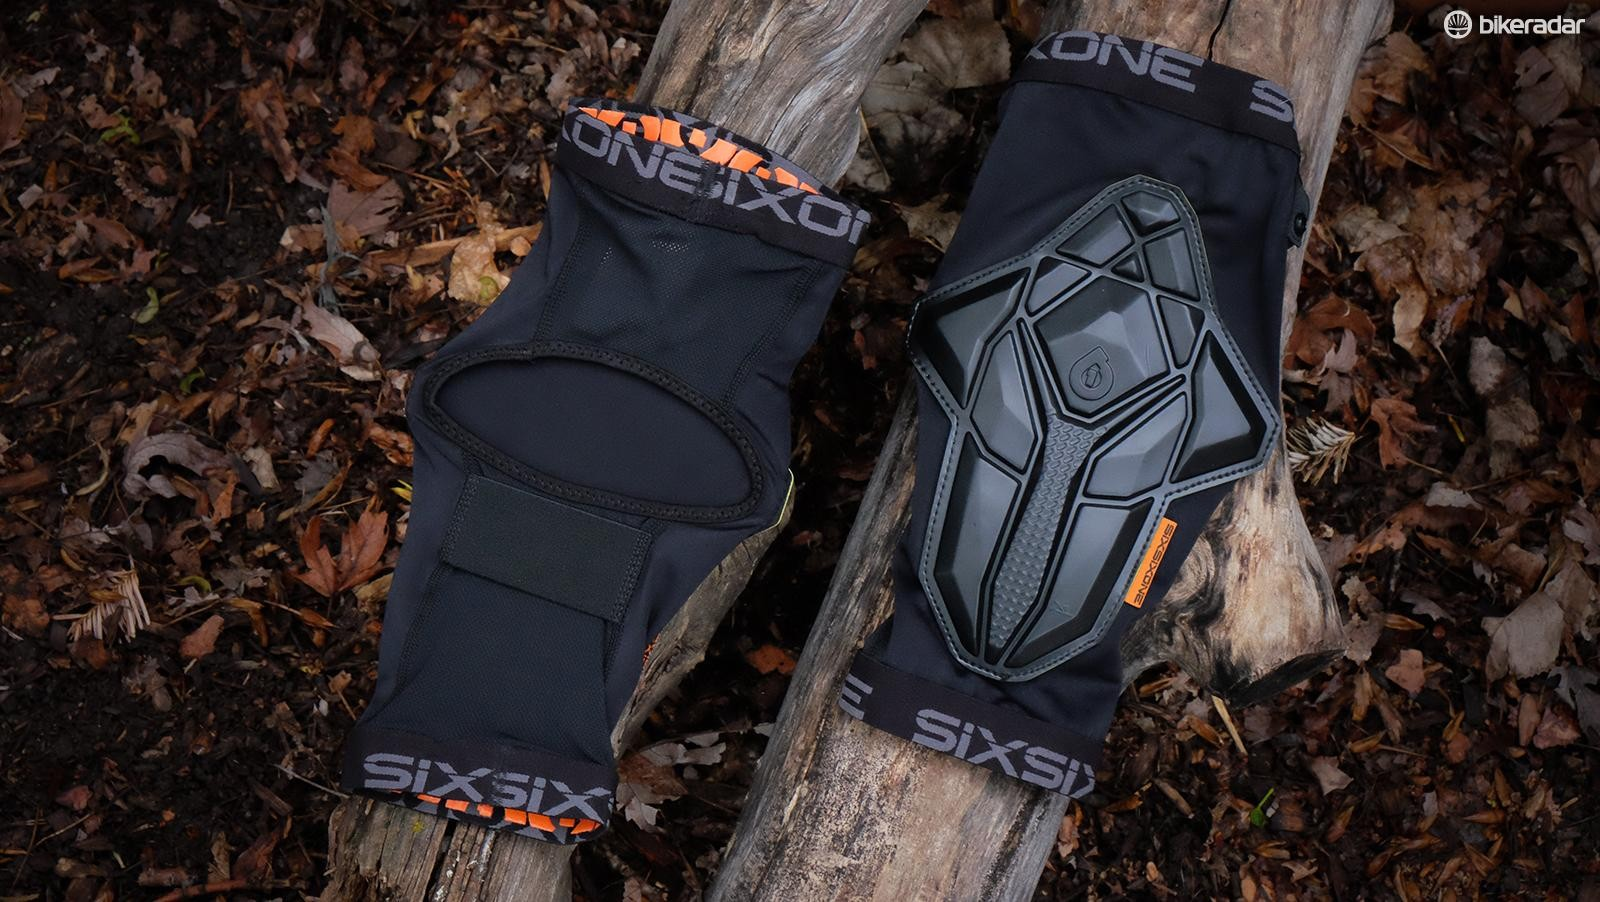 The SixSixOne Recon pads are lightweight and intended to be comfortably worn during long, technical trail rides